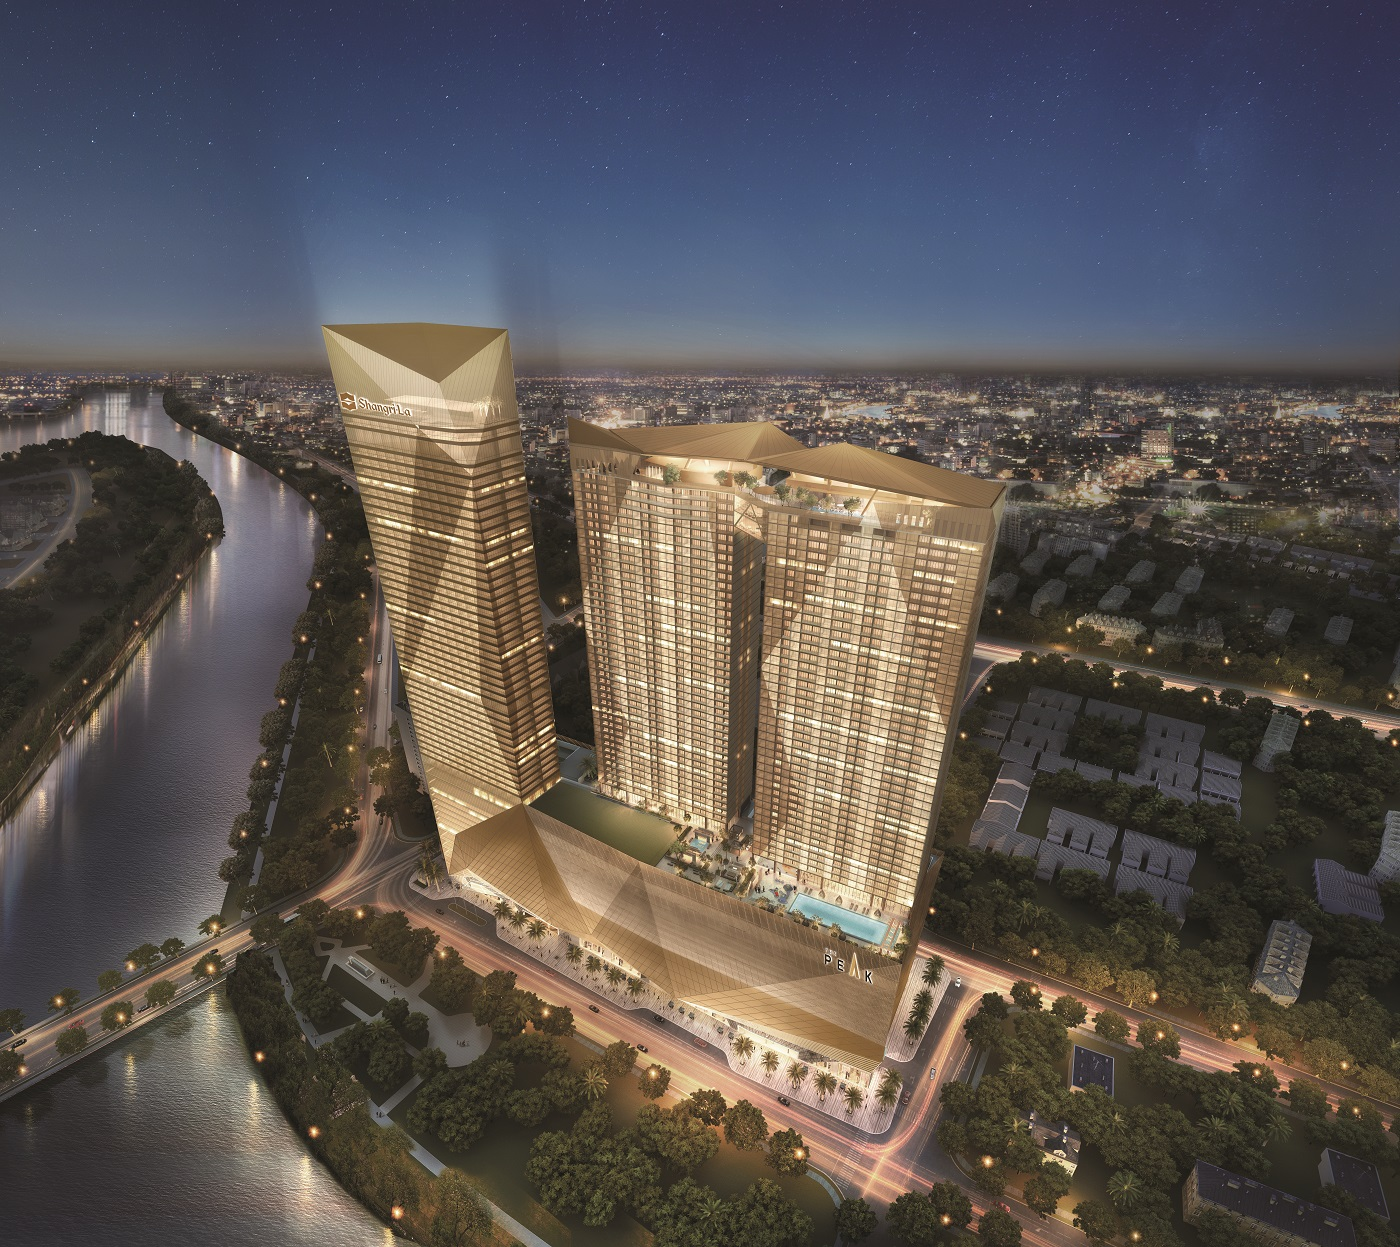 The Peak Mall in Phnom Penh opens in 2020 with 420,000-sqft mall area - Alvinology